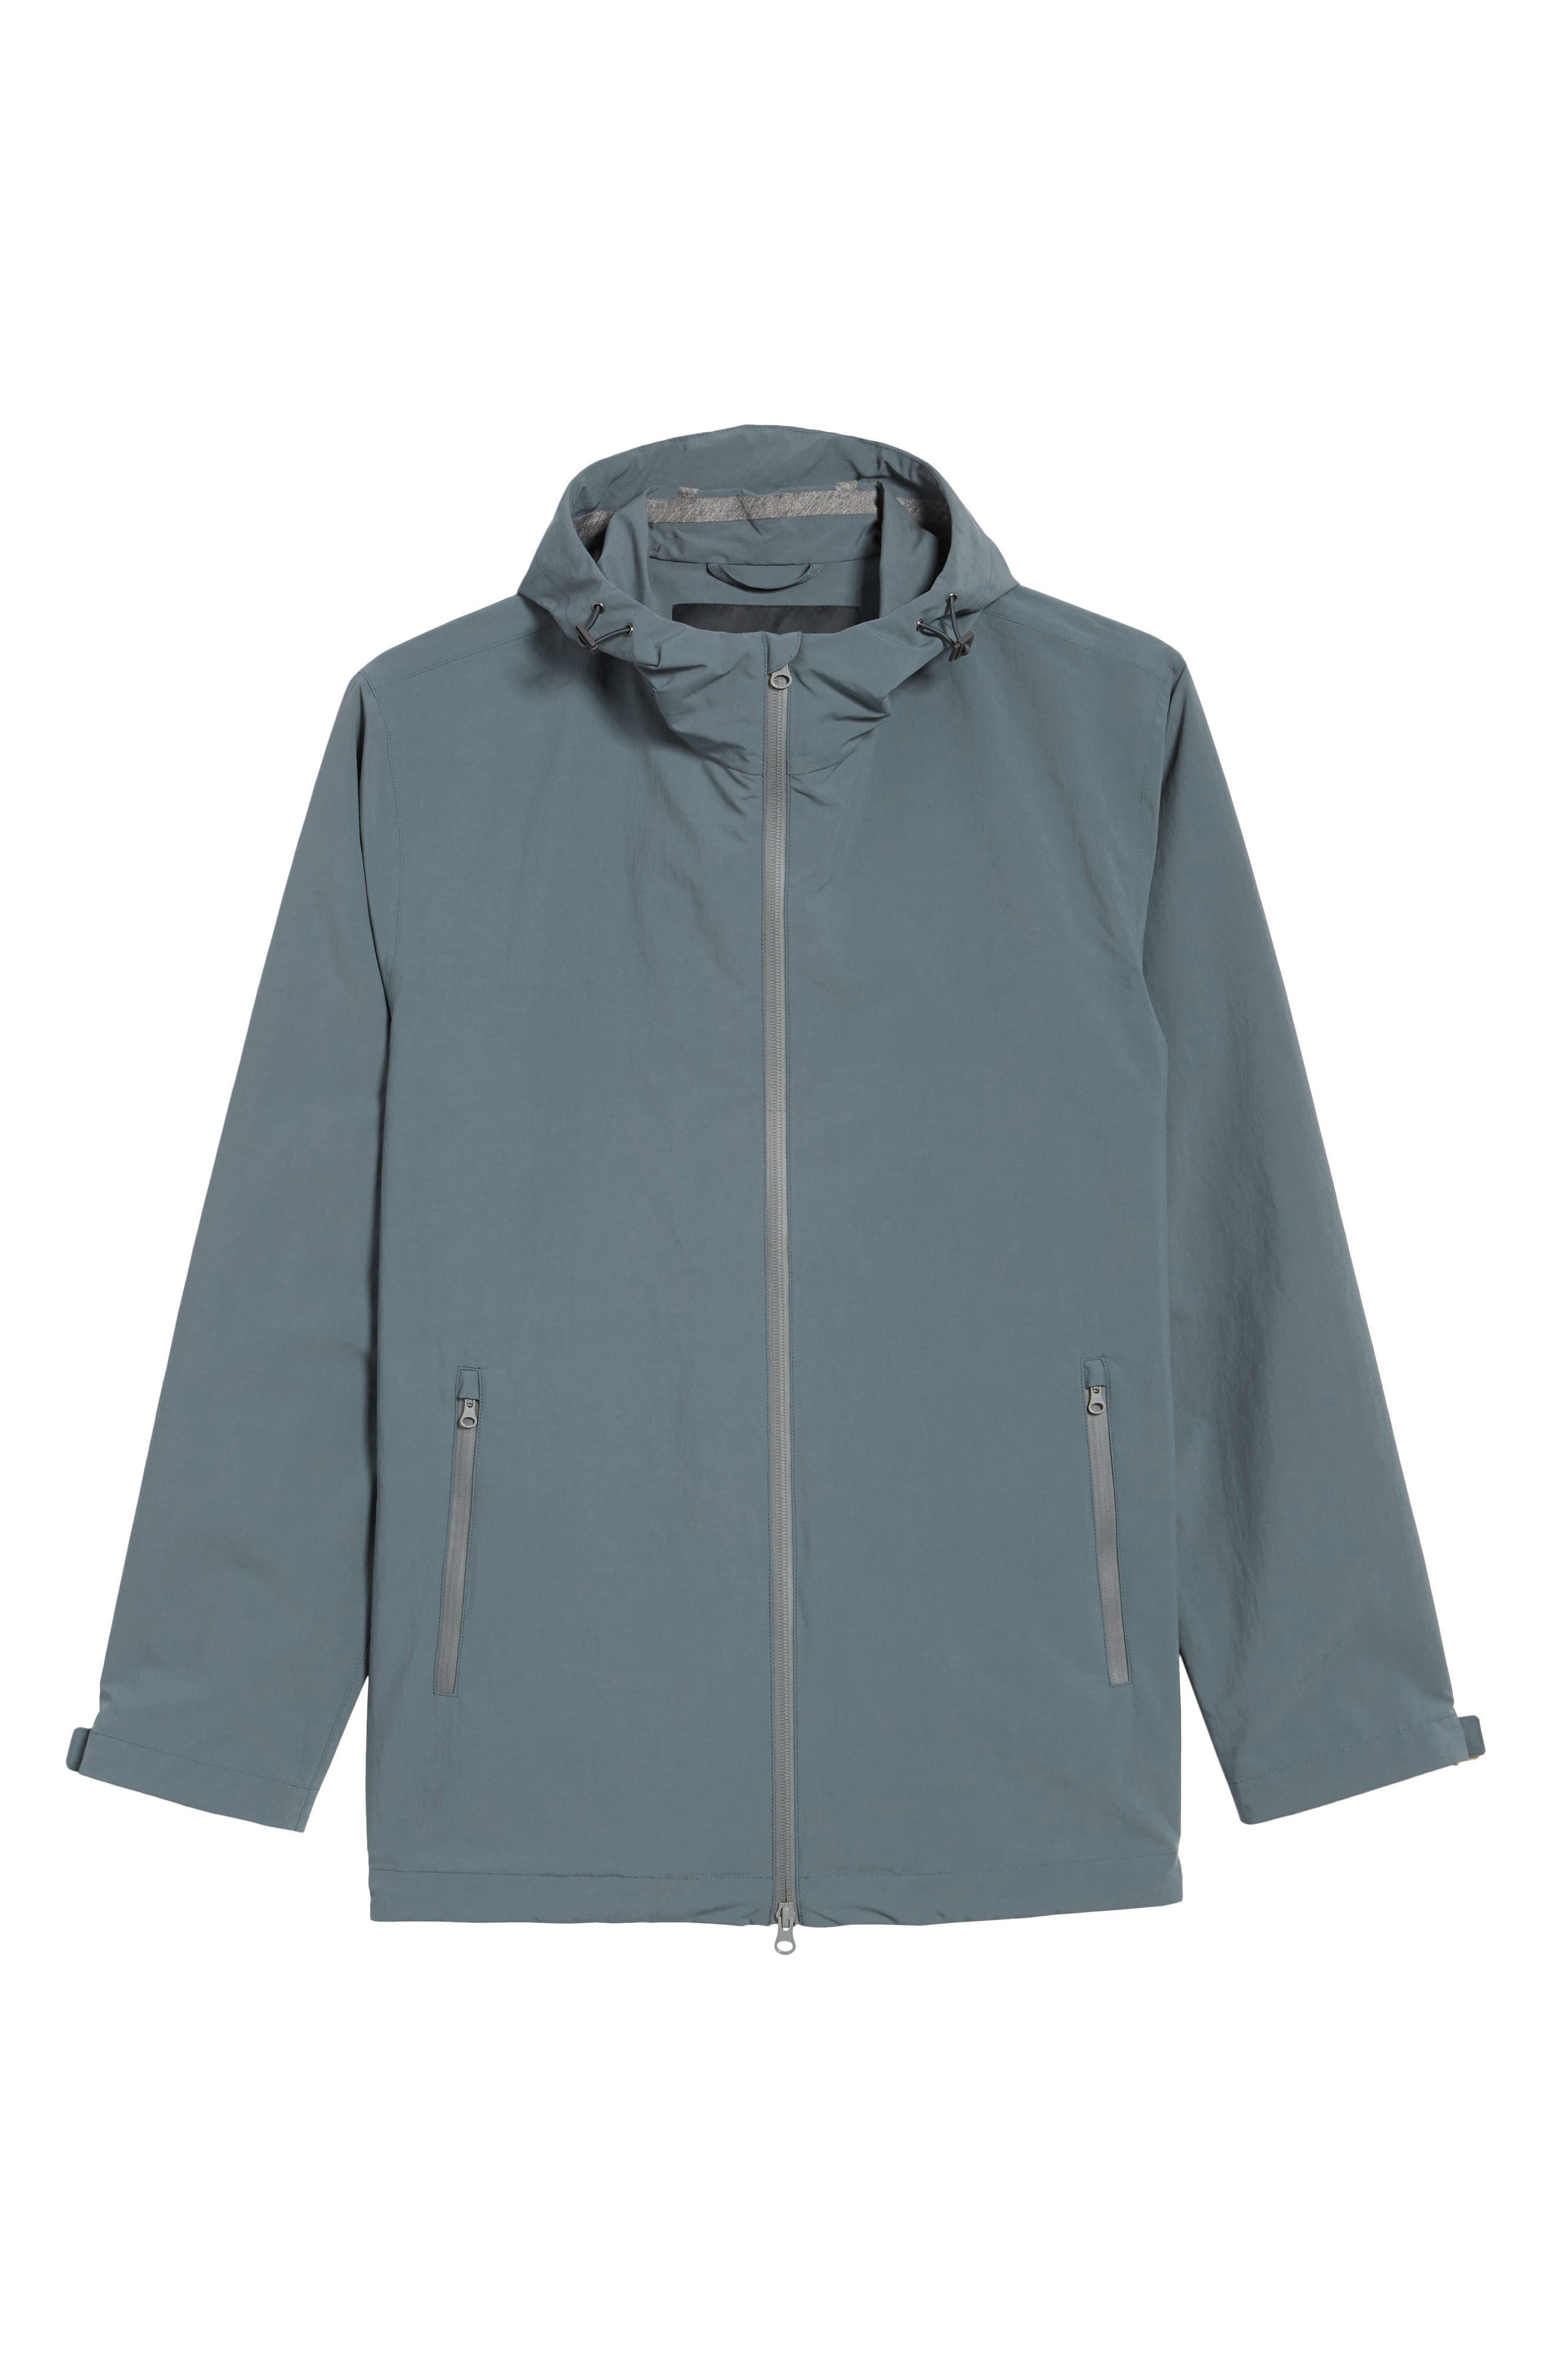 Plaster Hooded Raincoat,                             Alternate thumbnail 5, color,                             BLUE/ GREY